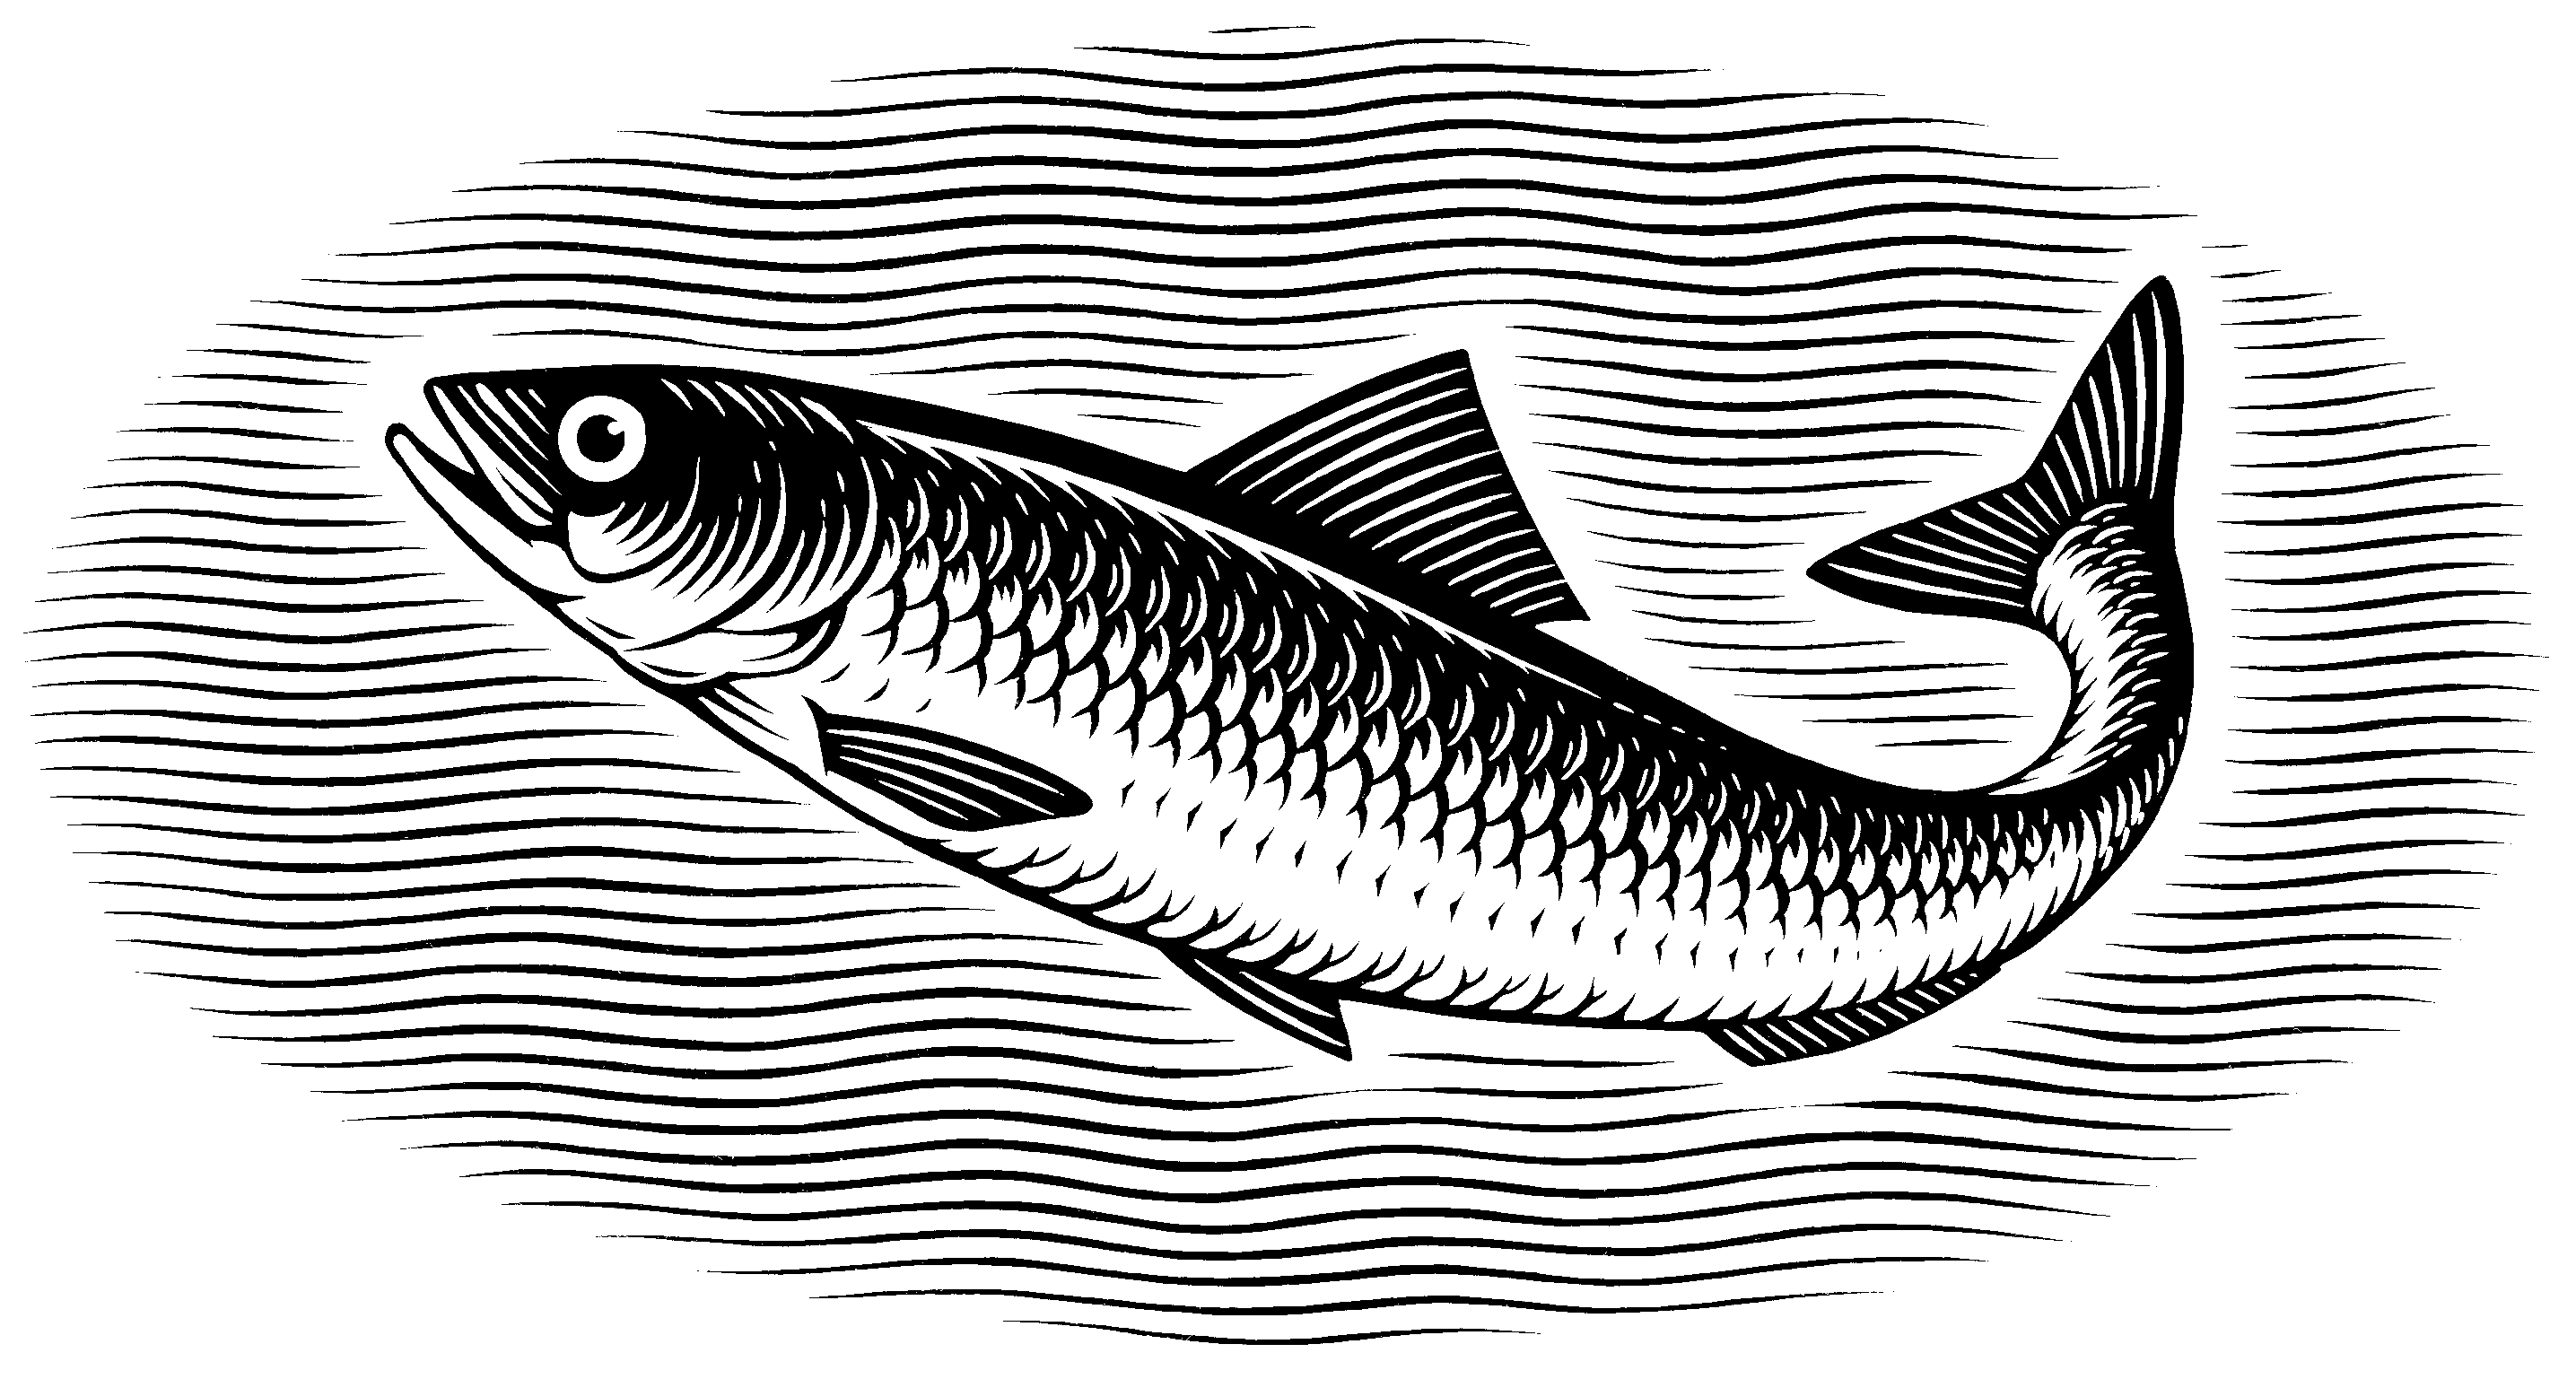 Sardine with Curved Tail Up